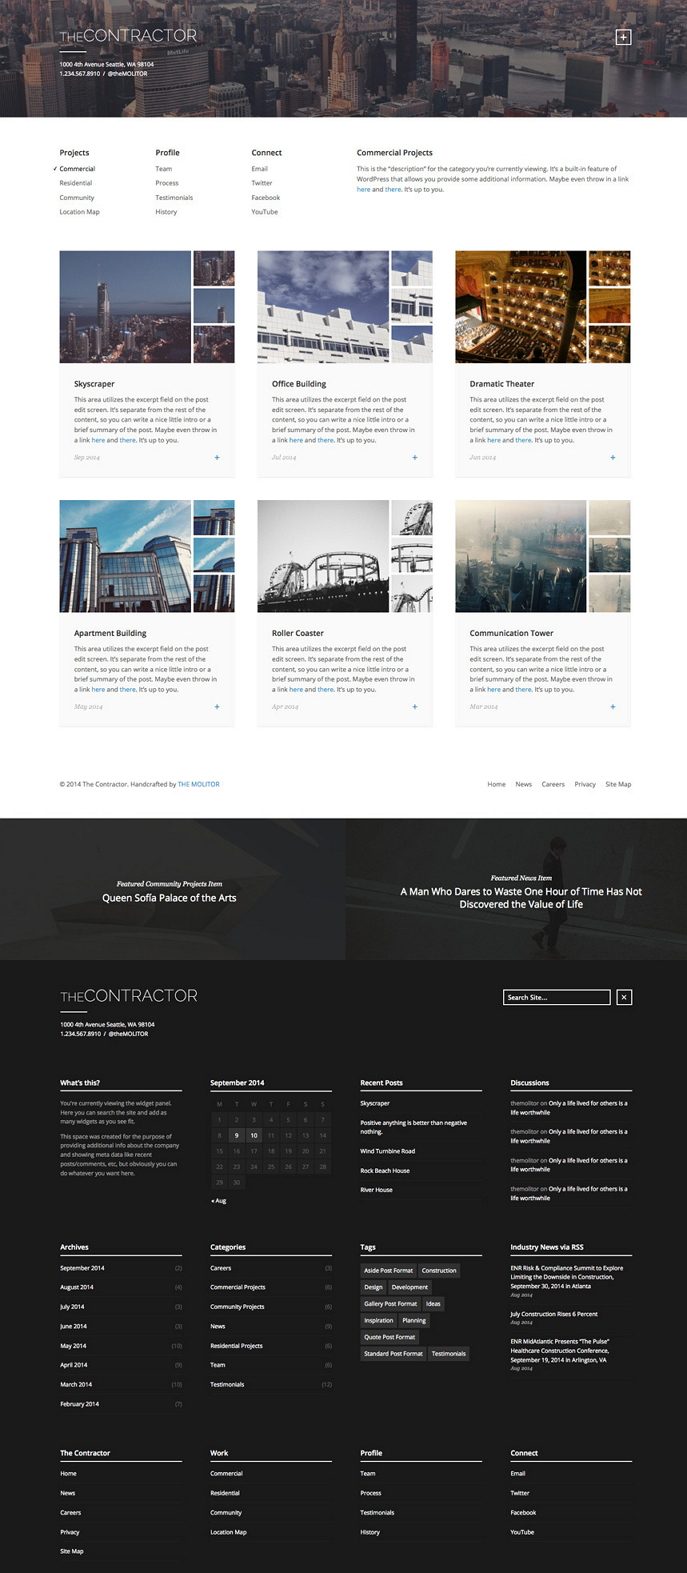 The Contractor is a WordPress theme built specifically for construction companies and architectu ...